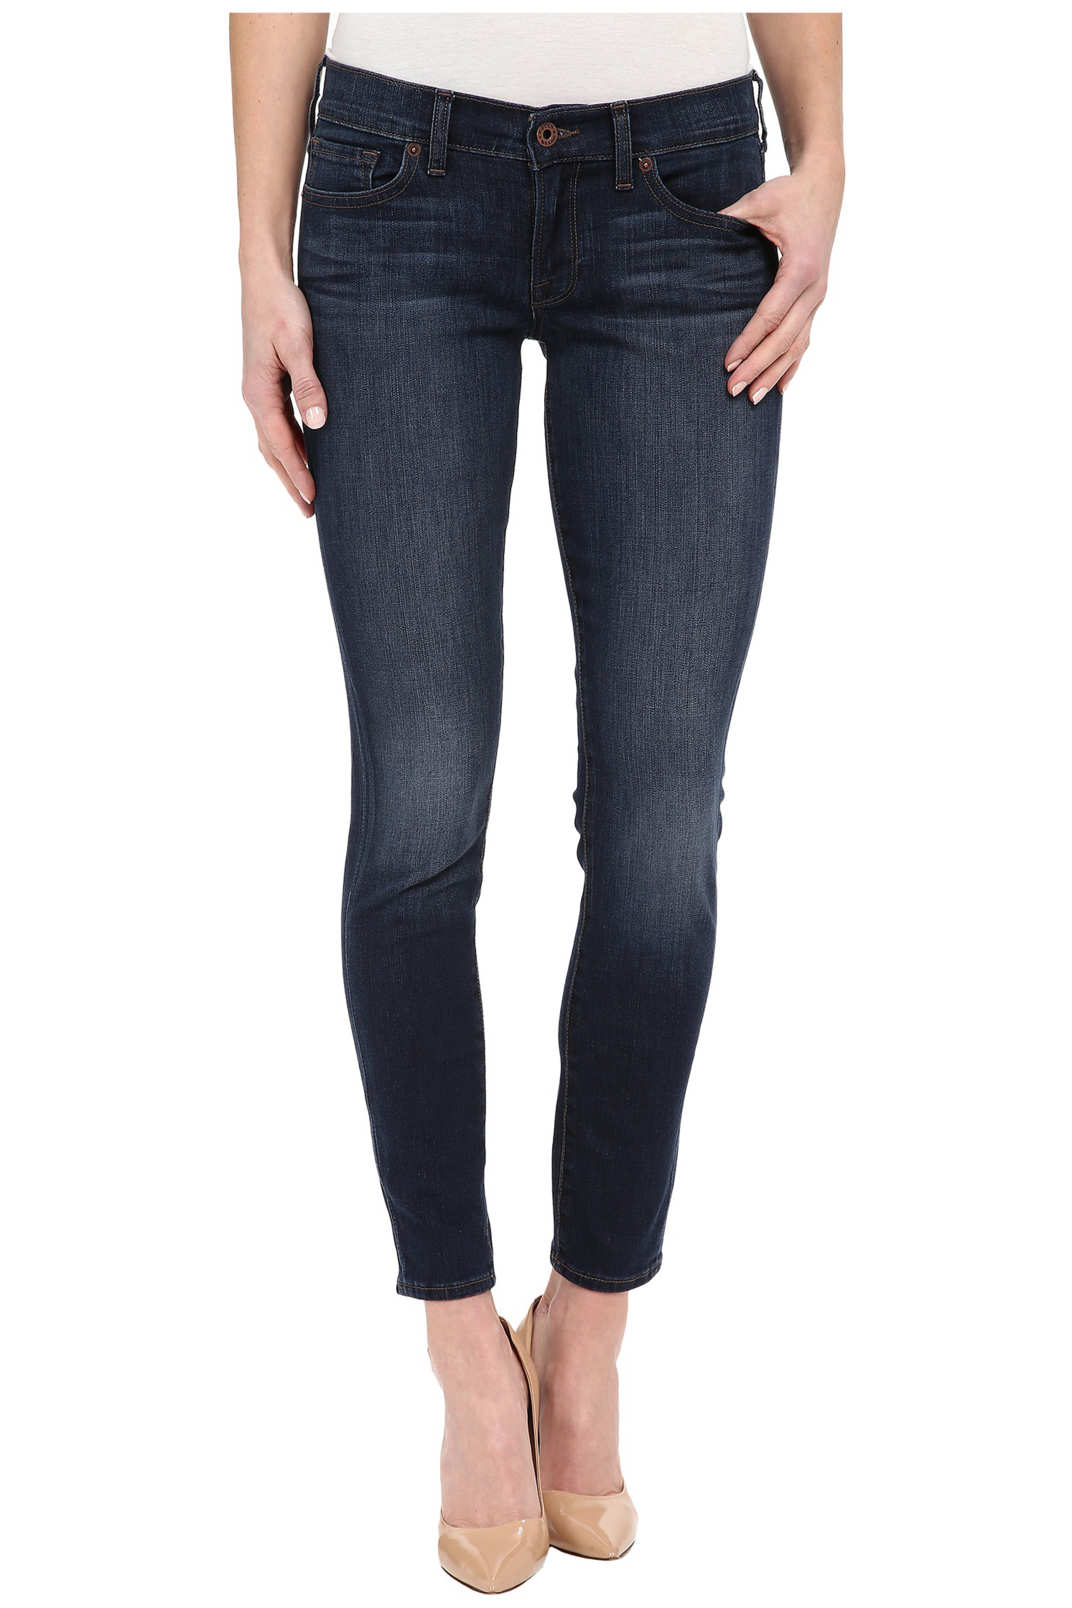 jeans for women best professional jeans. u201c TNUFAOX